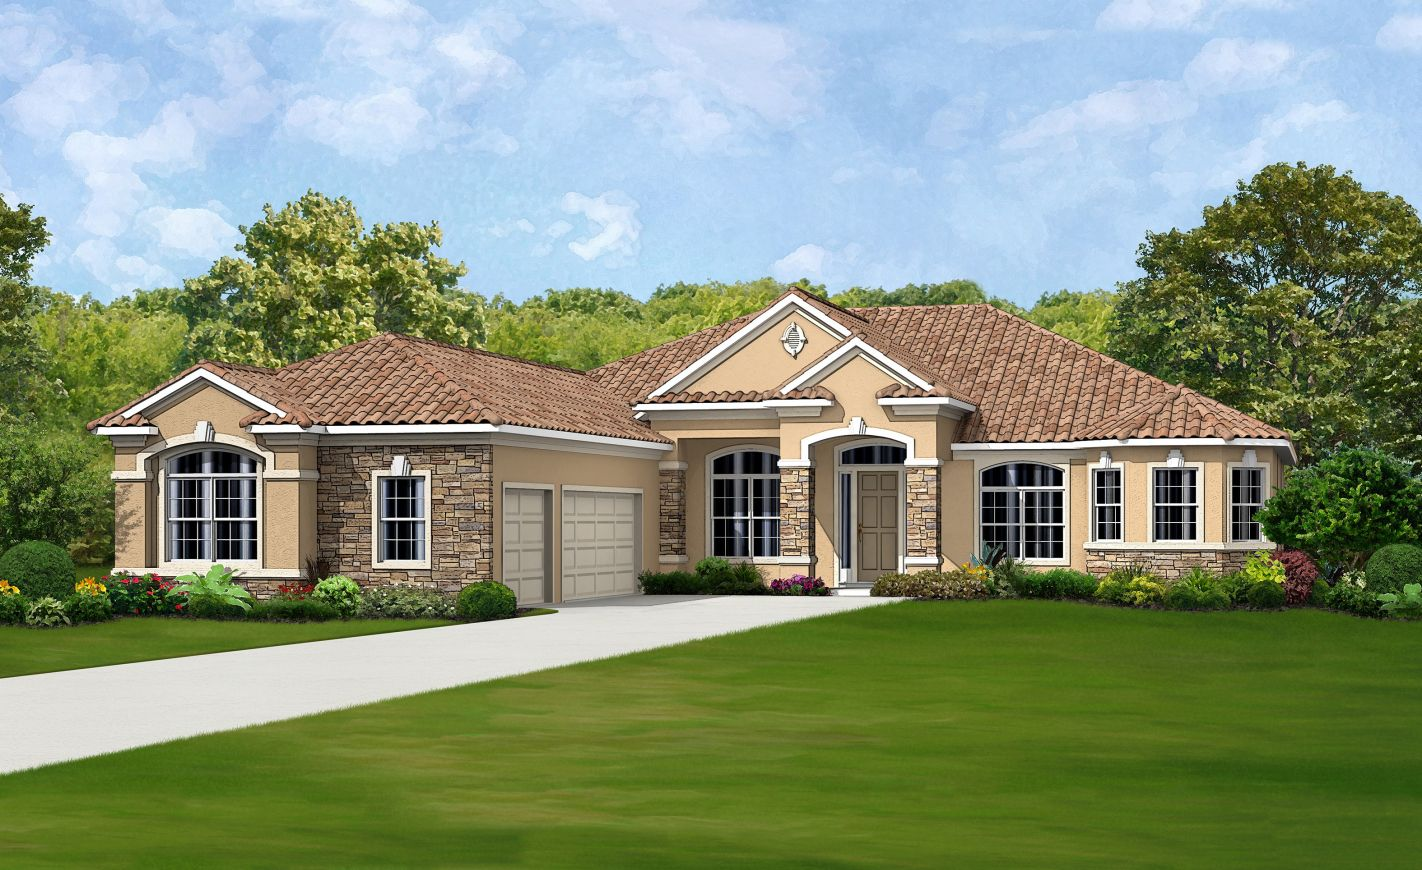 Model homes for sale tampa fl home decor ideas for Model home decorations for sale